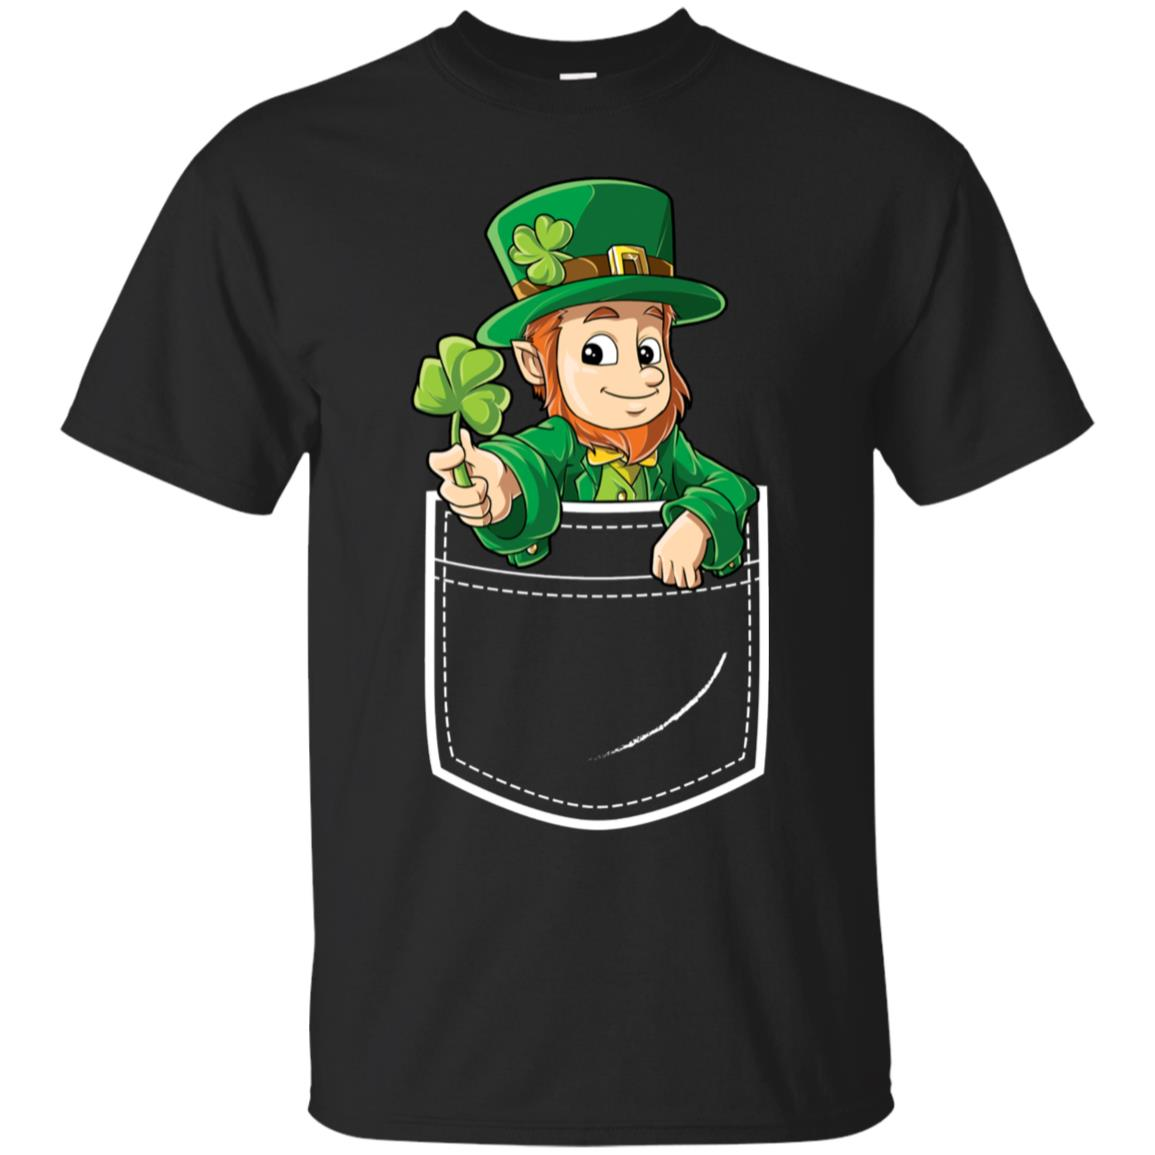 Leprechaun Pocket T Shirt St Patricks Day Boys Kids Women 99promocode